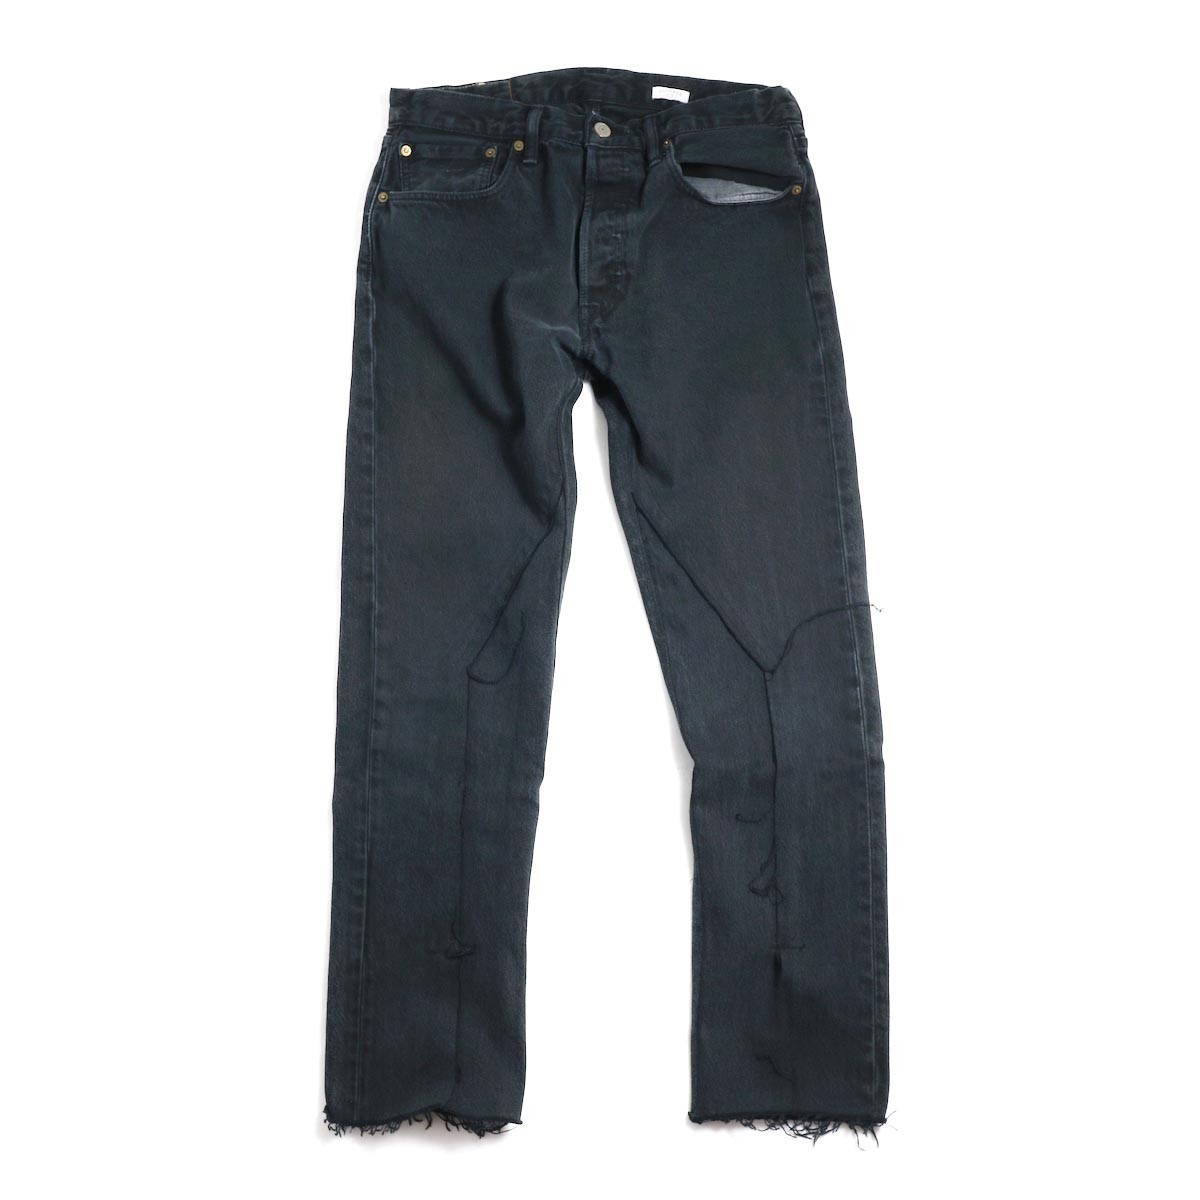 OLD PARK / Slit Jeans -Black Msize(B)